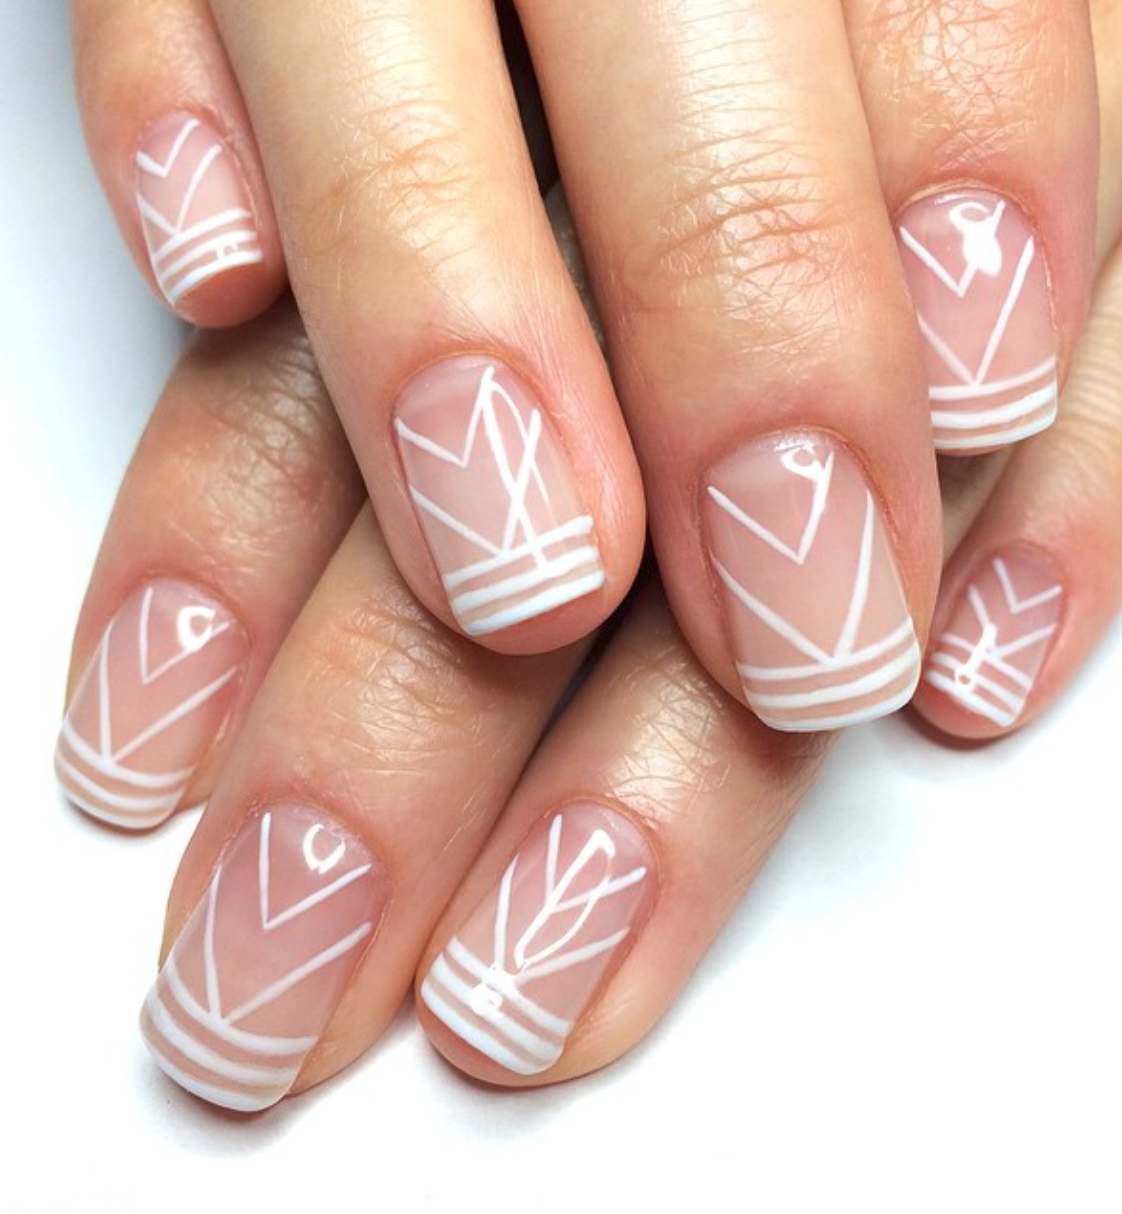 15 Nail Design Ideas That Are Actually Easy to Copy   Negative space ...